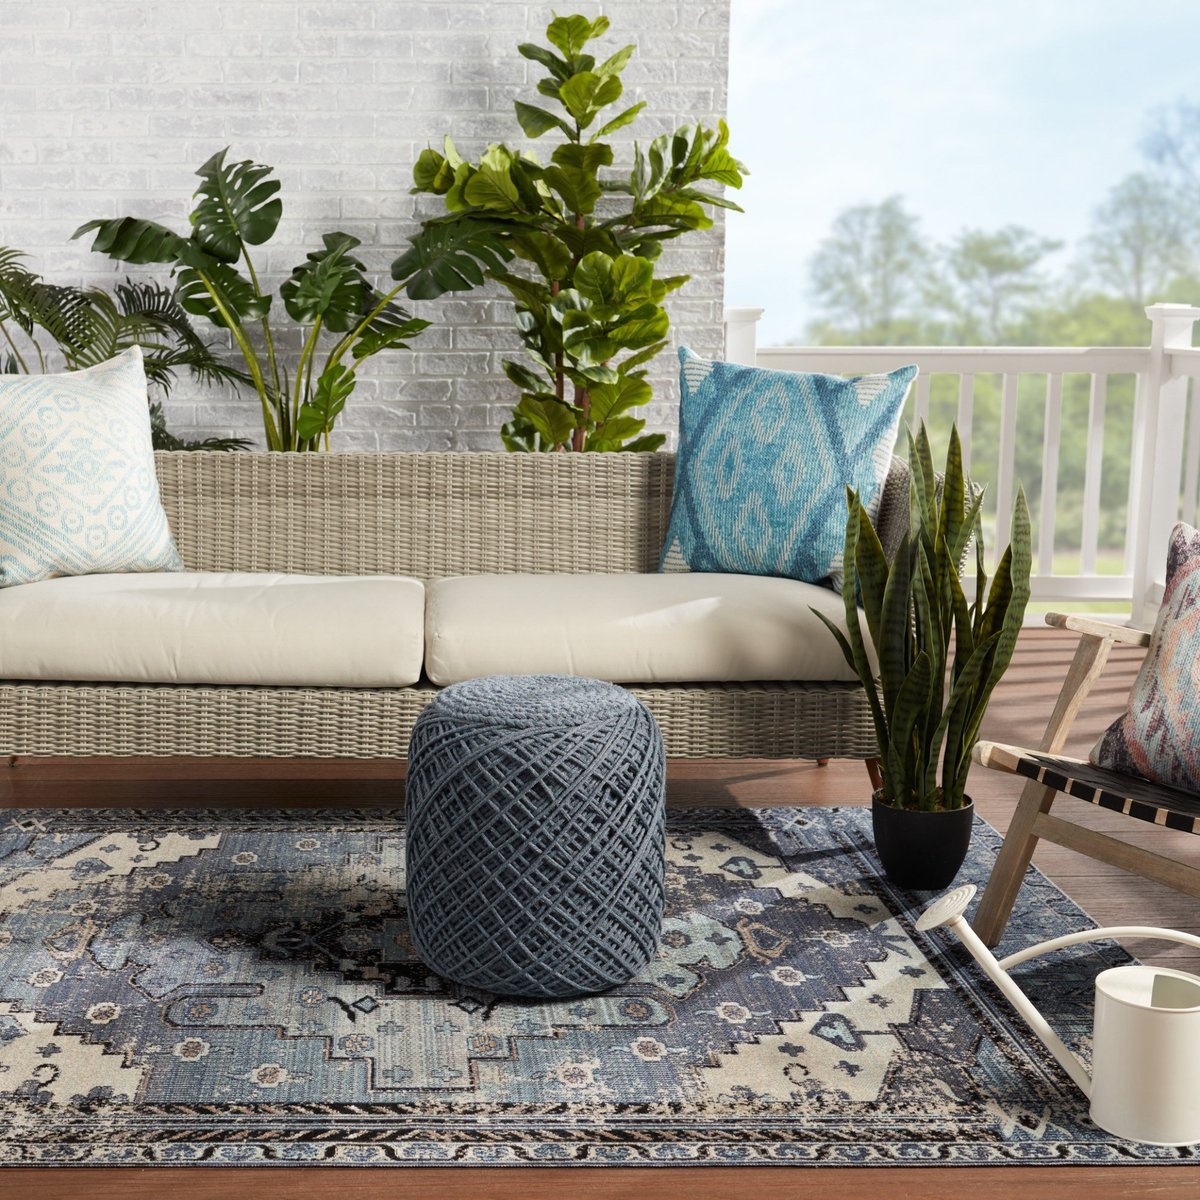 Cool Blue Outdoor Rug Ideas